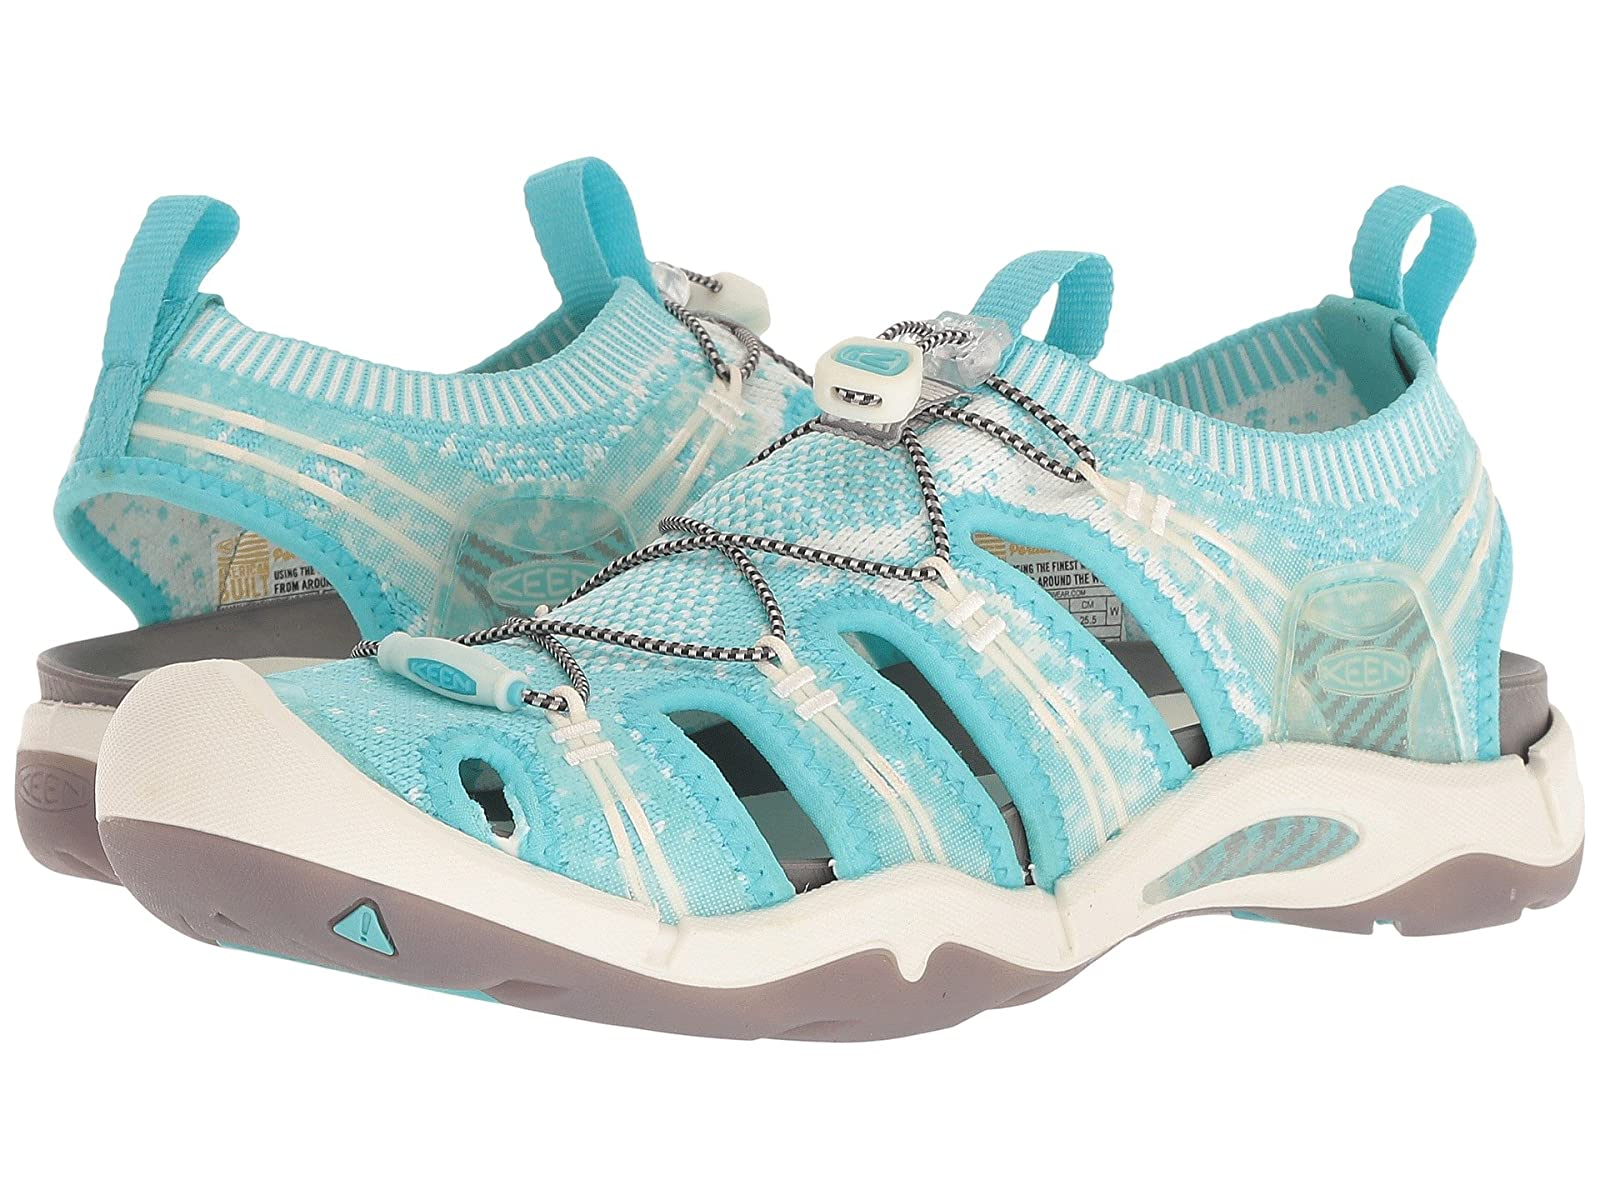 Keen Evofit OneAtmospheric grades have affordable shoes